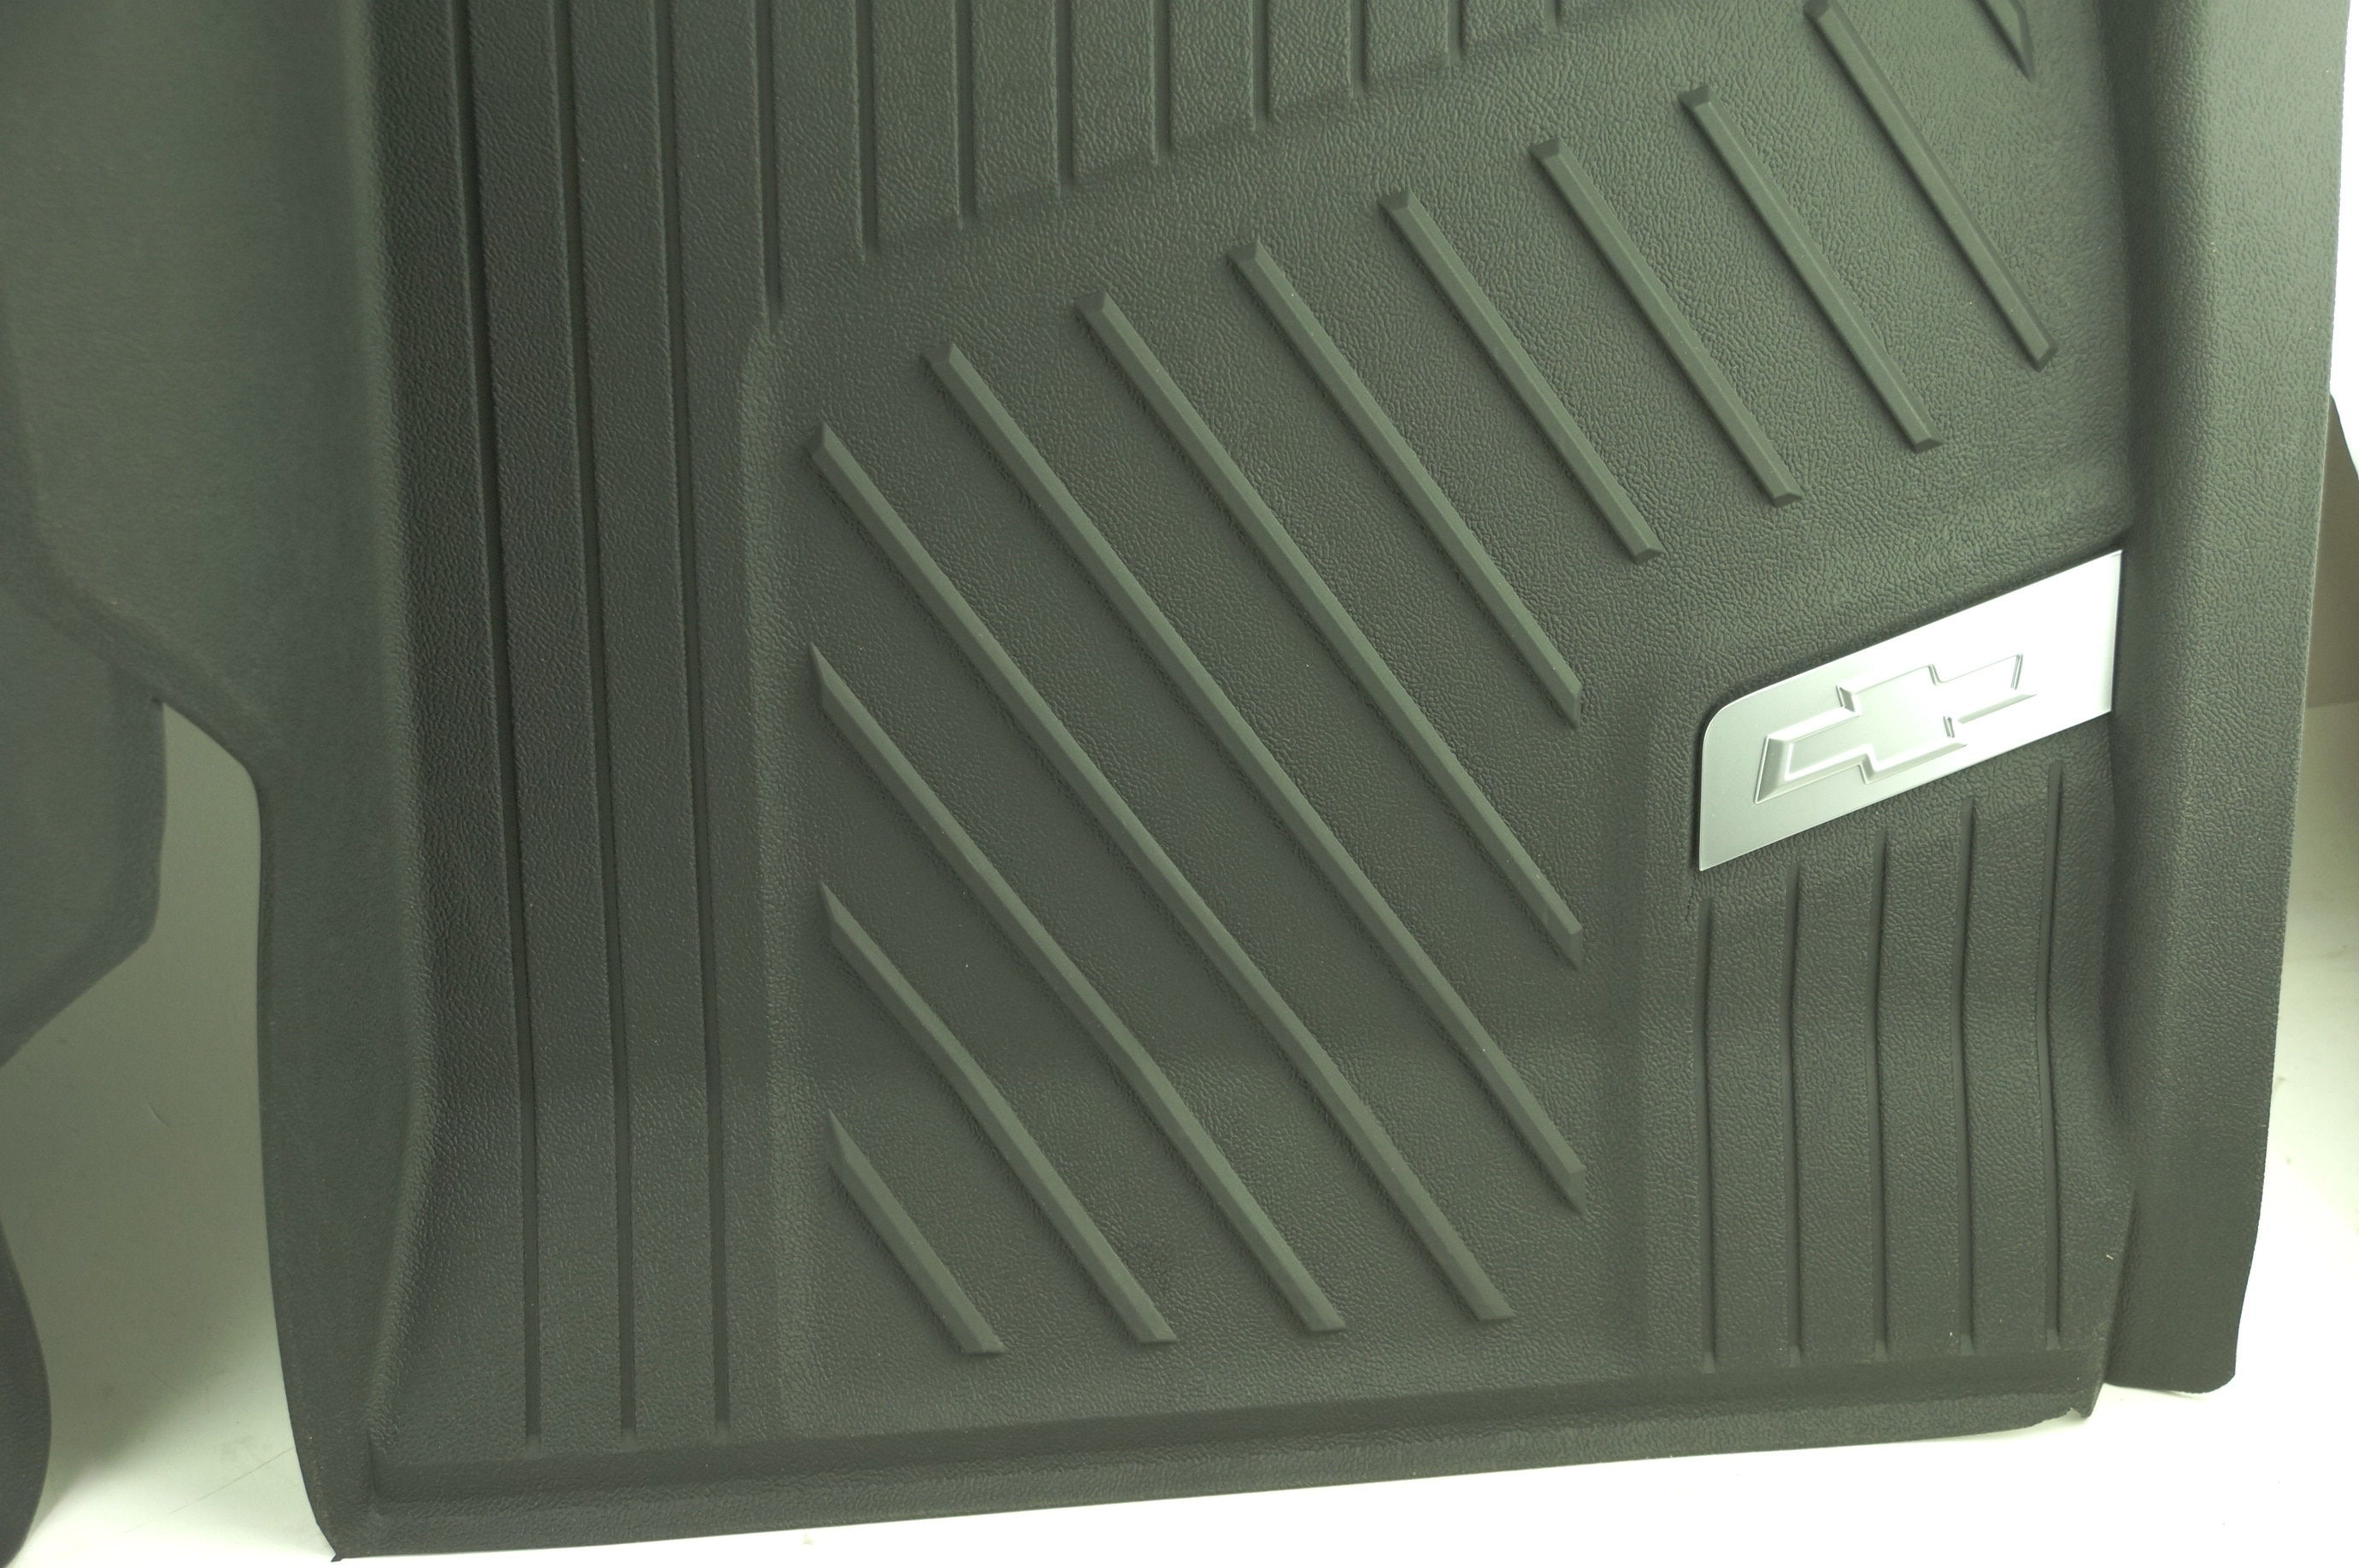 New OEM 84370633 GM 15-21 Colorado Front All Weather Floor Liners Black w/Bowtie - image 6